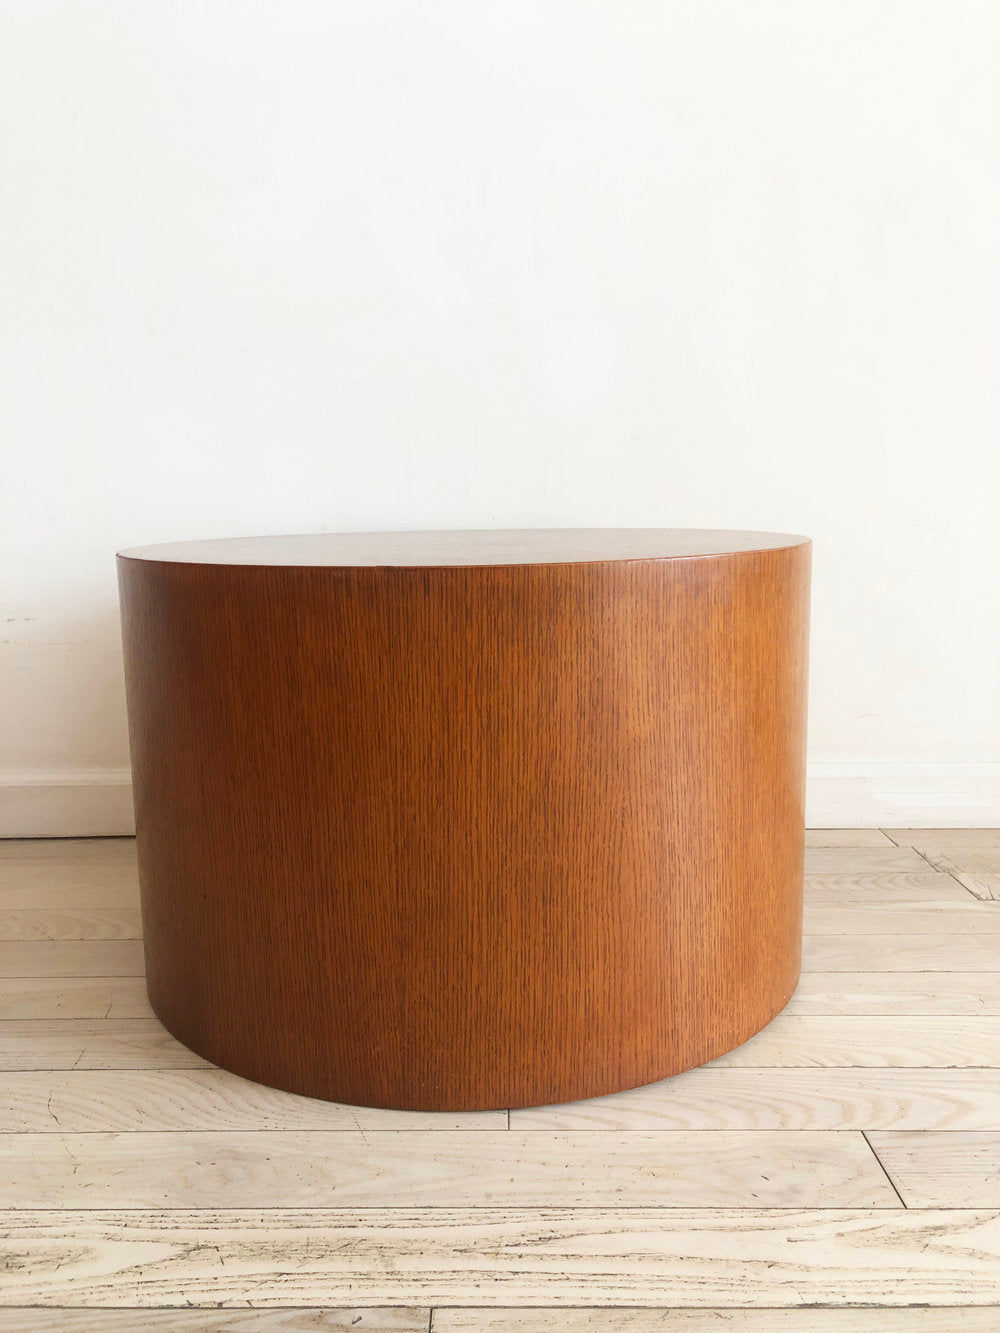 Beautiful 1970s Oak Drum Table by Paul Mayen For Habitat / Intrex